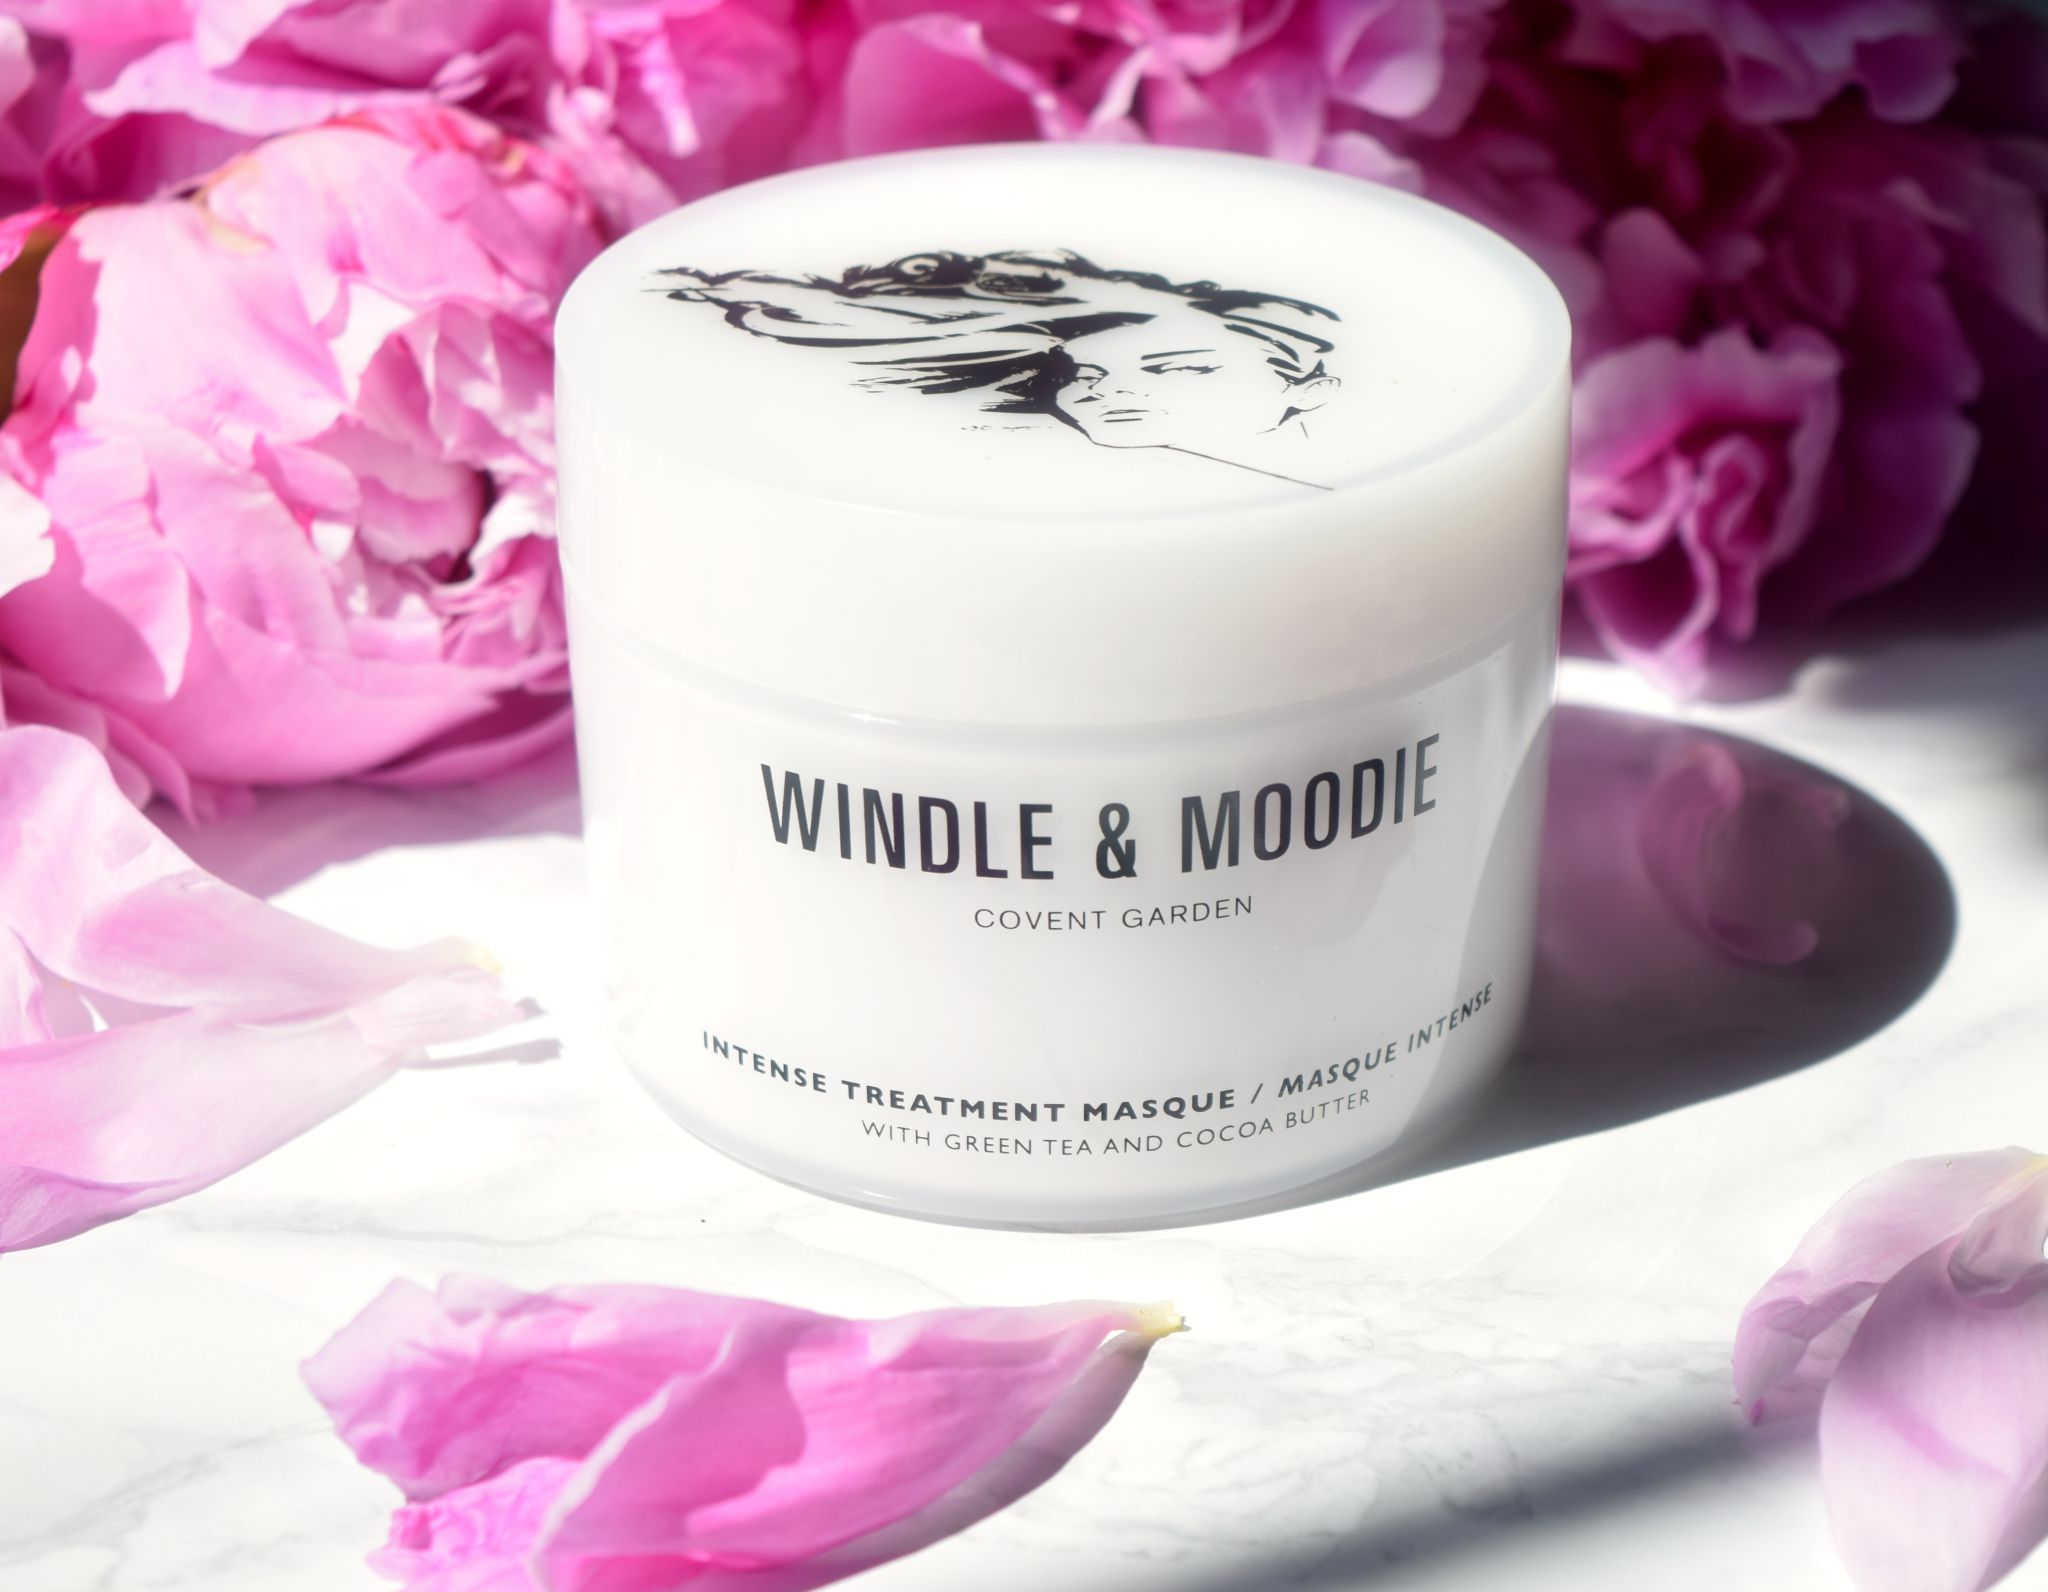 Windle & Moodie Intense Treatment Masque